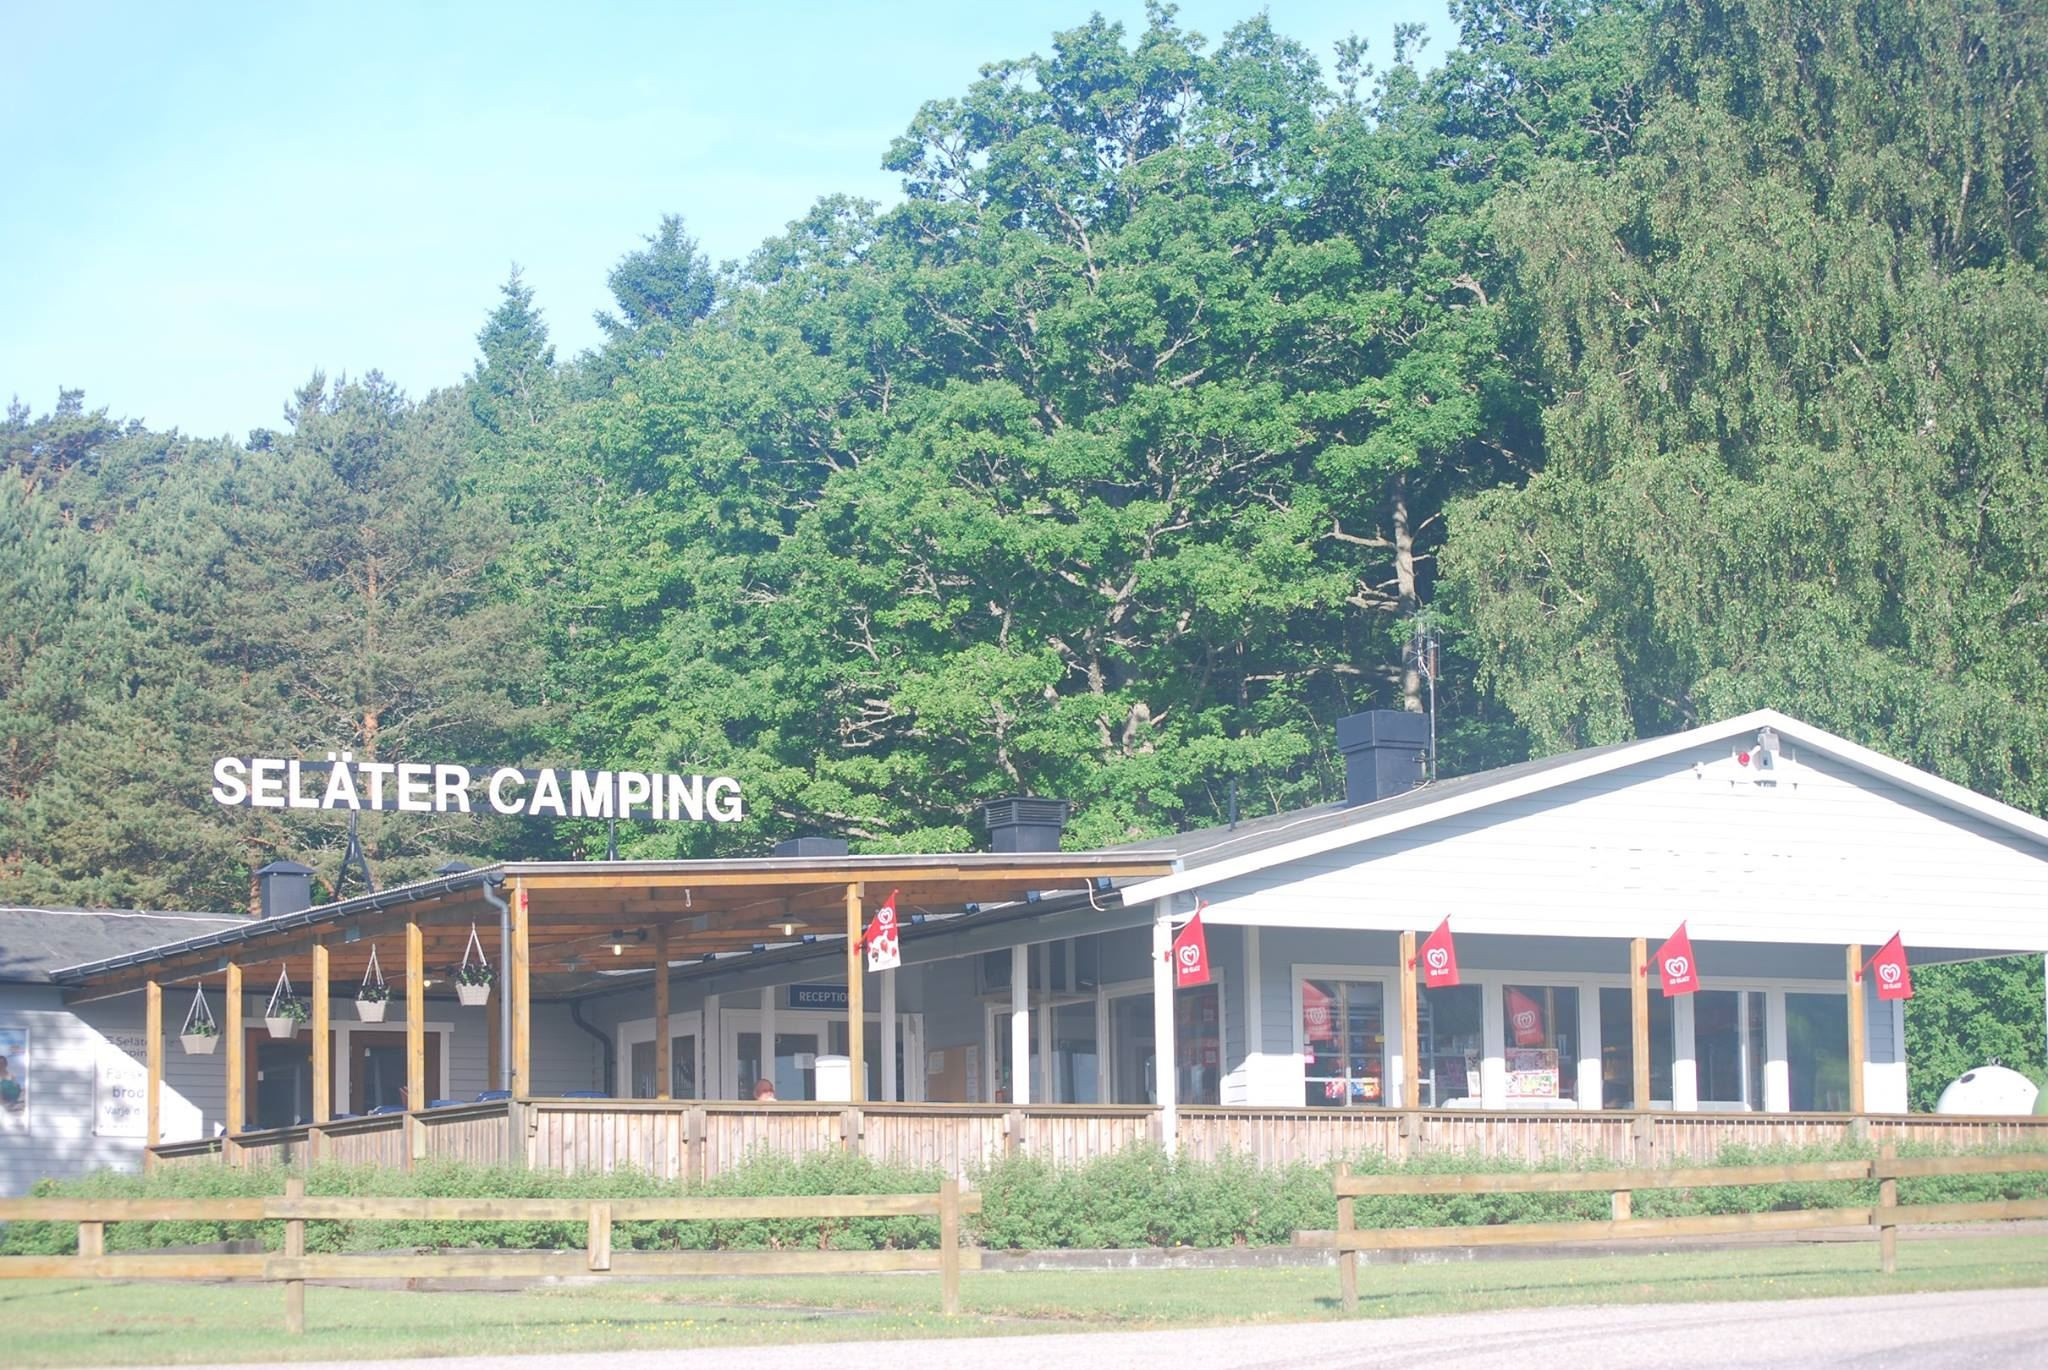 Seläter Camping/Cottages